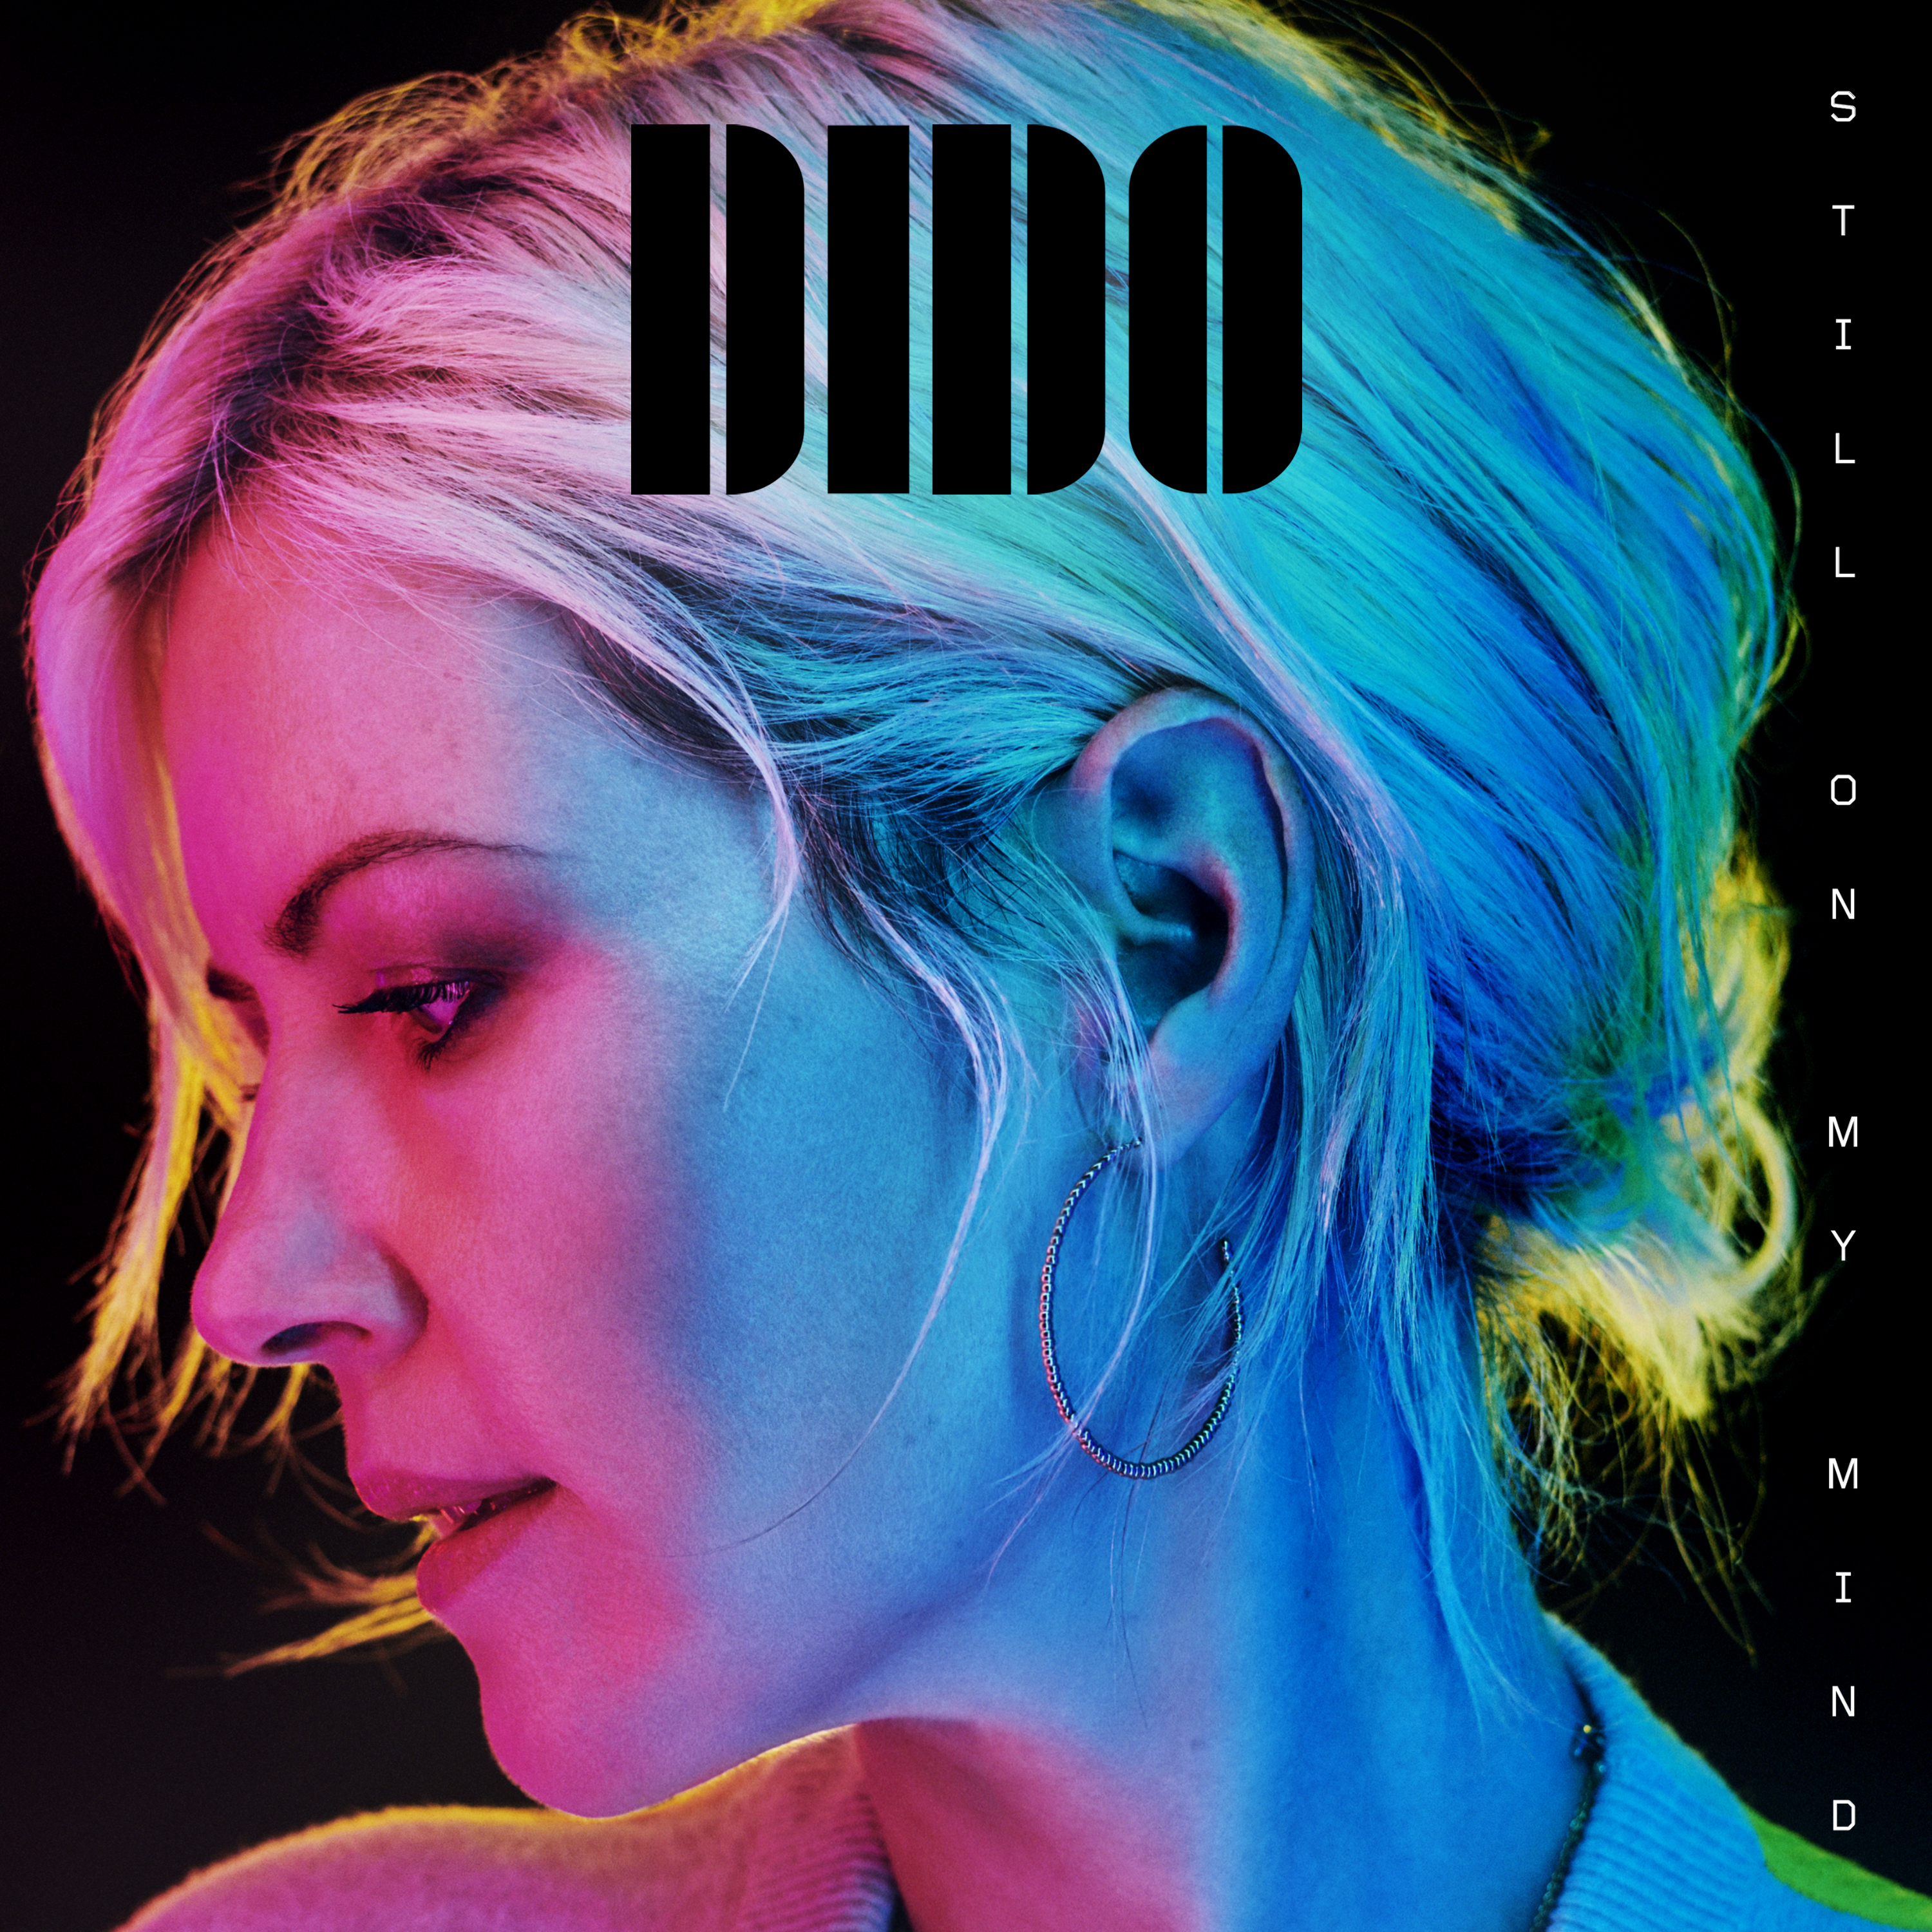 [10's] Dido - Have To Stay (2019) Dido%20-%20Still%20on%20My%20Mind